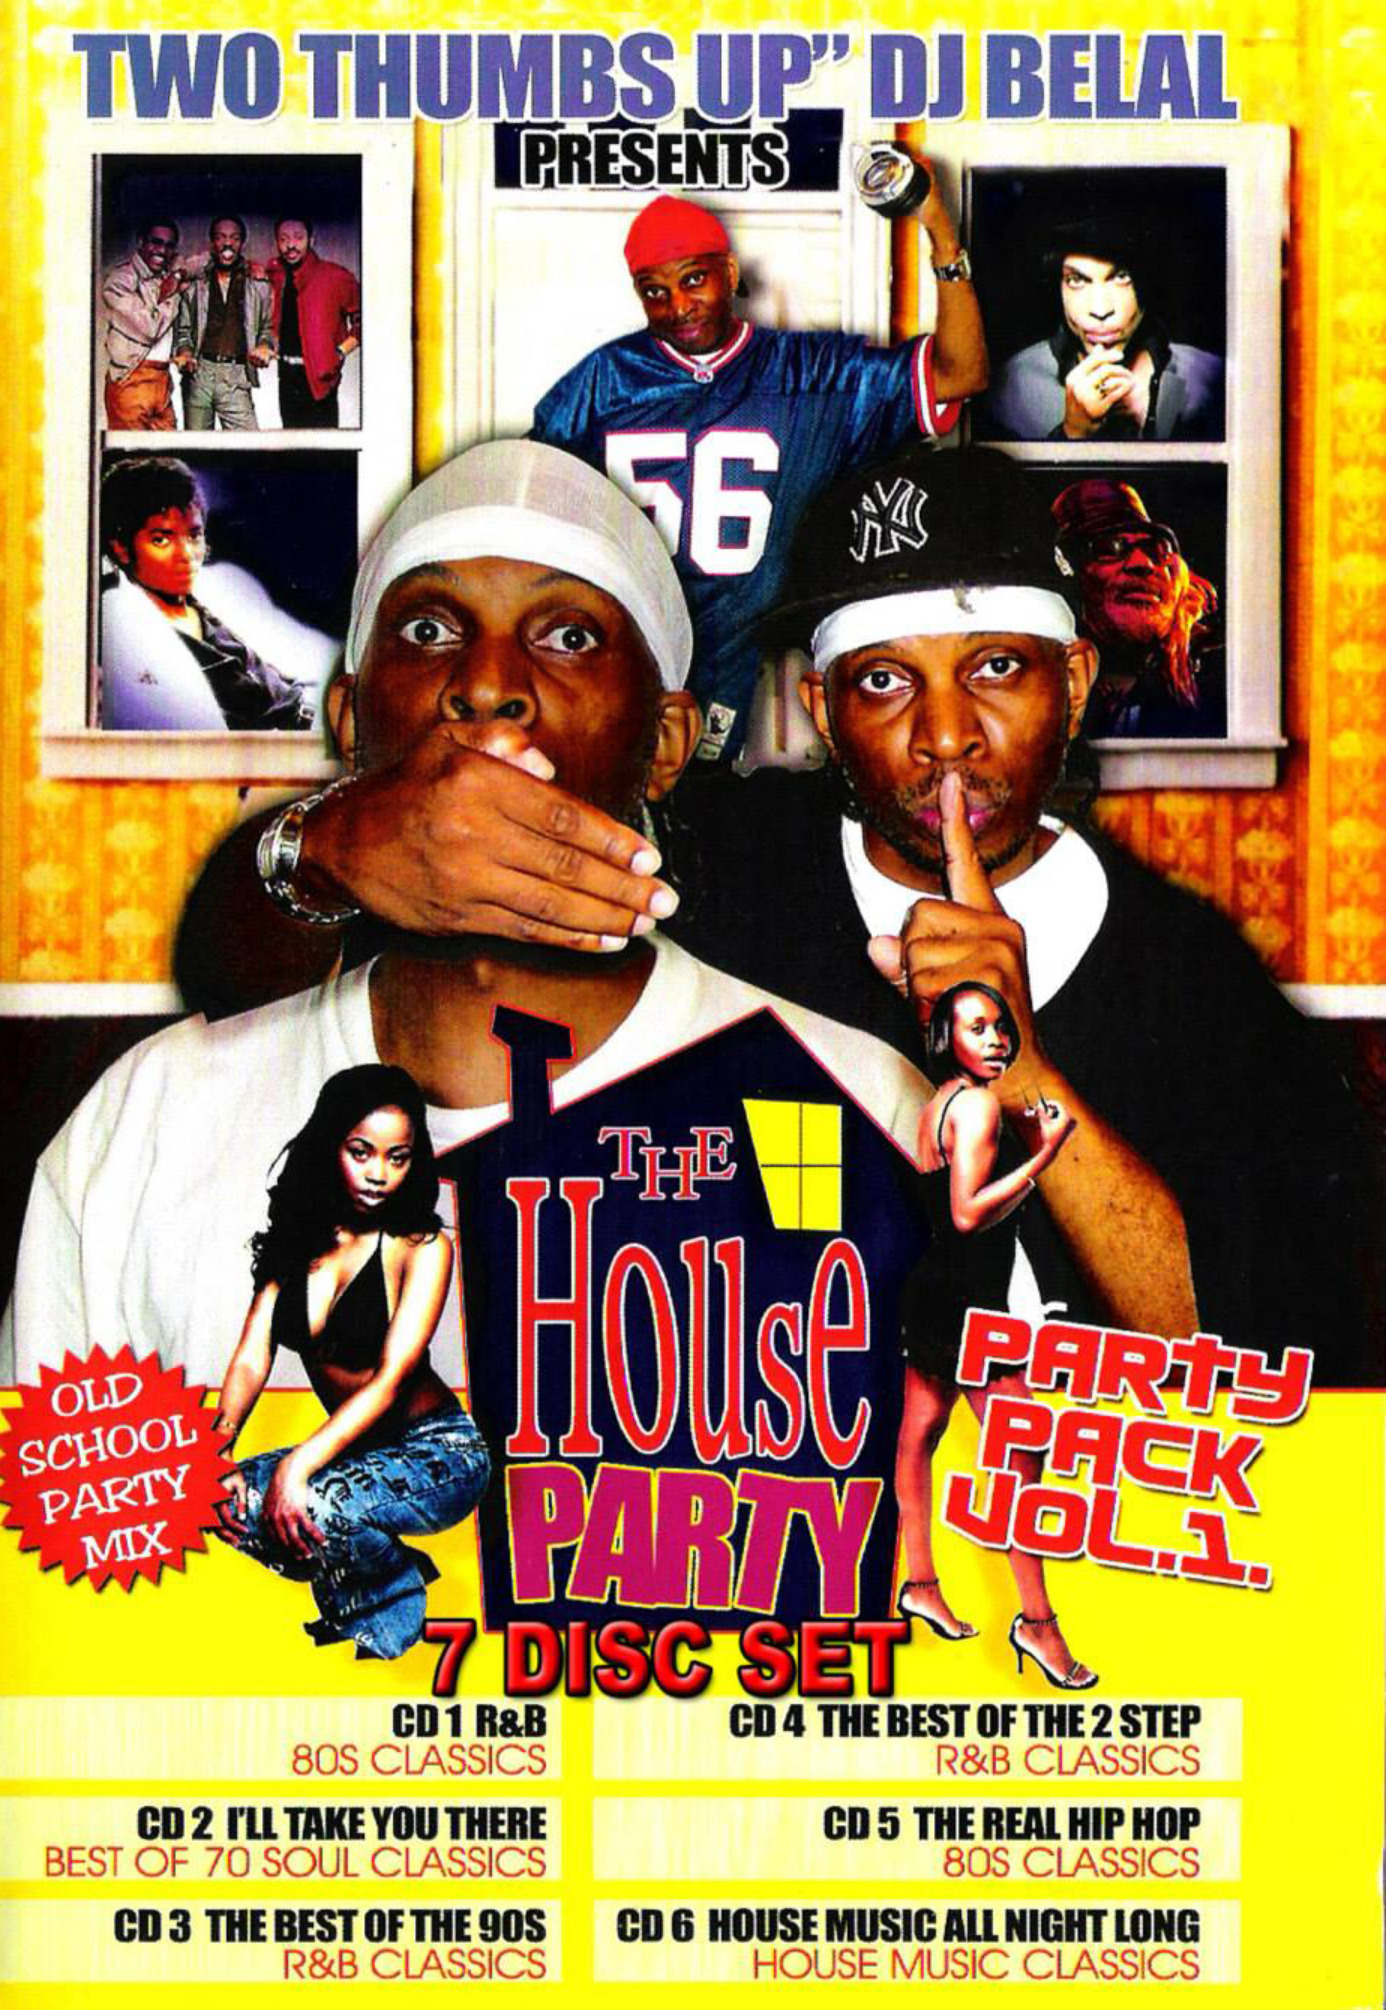 Old School House Party Mix 2 MP3 - The Legendary DJ Belal